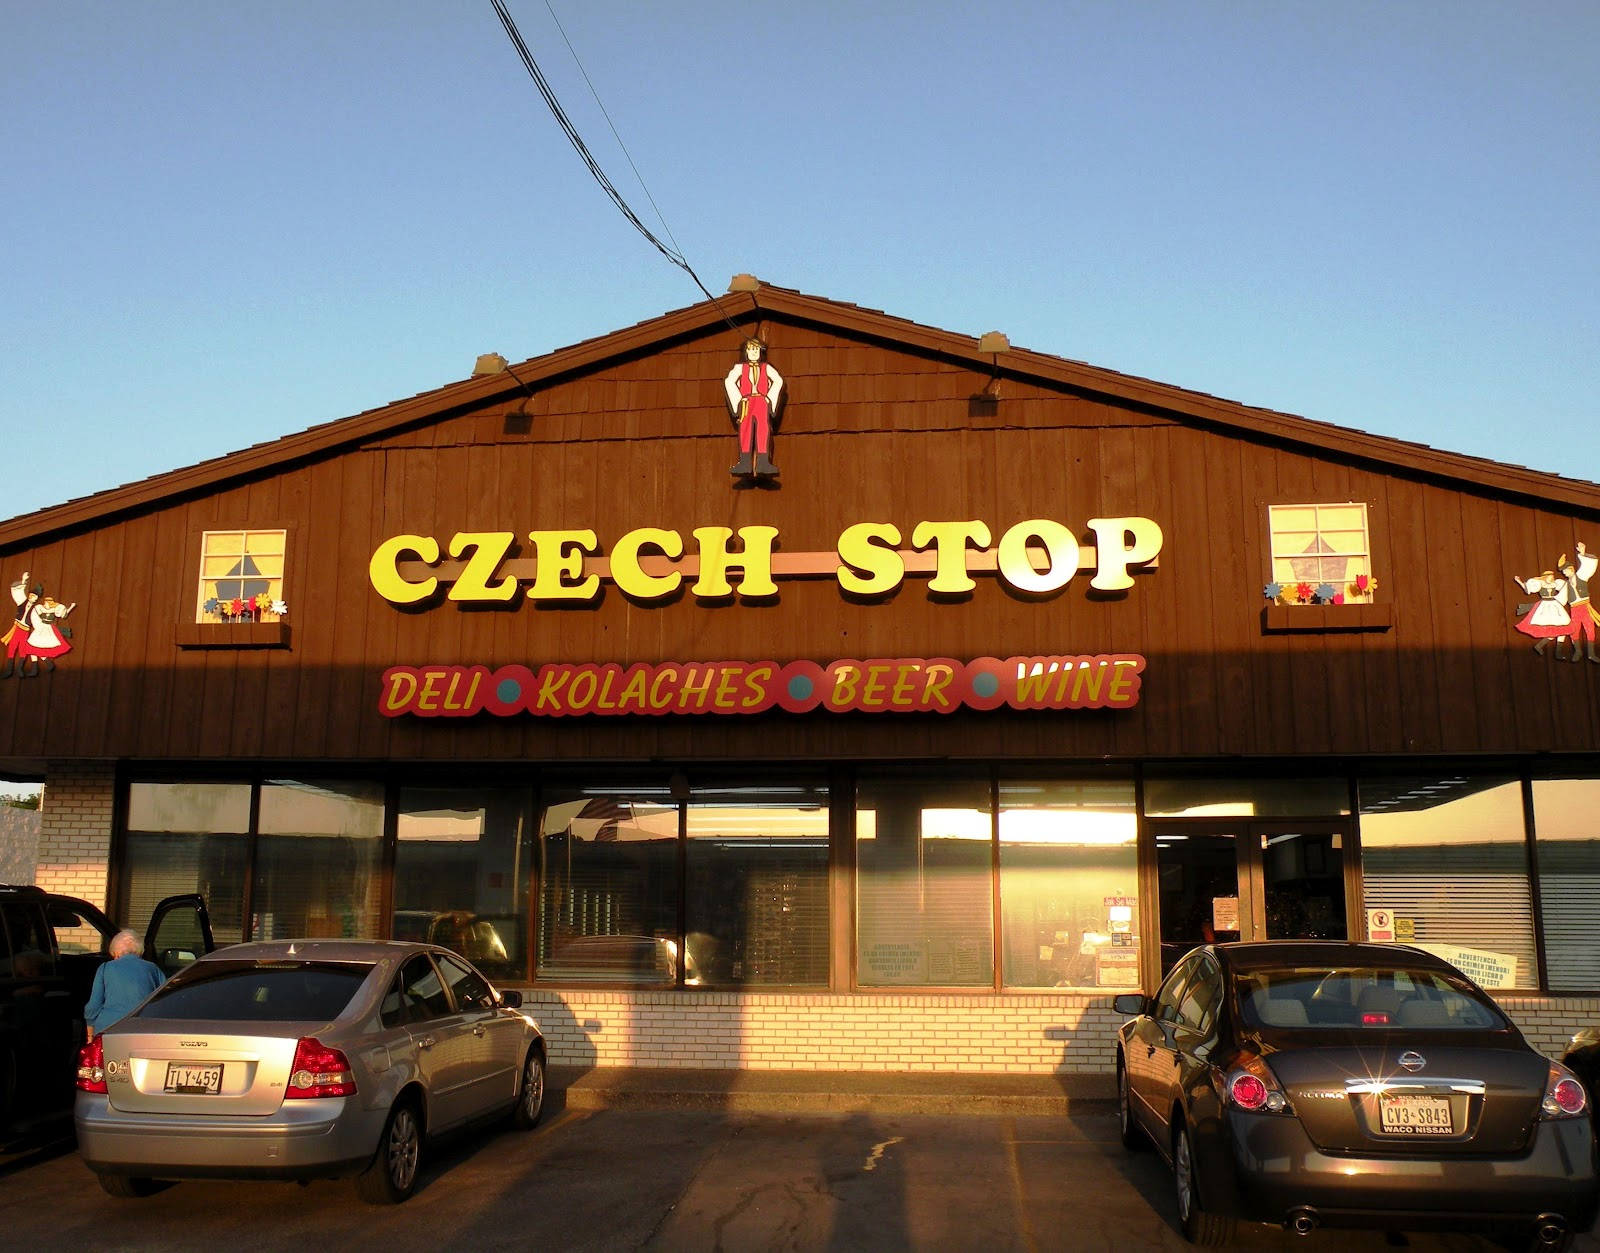 Come by the Czech Stop by renting a charter bus.